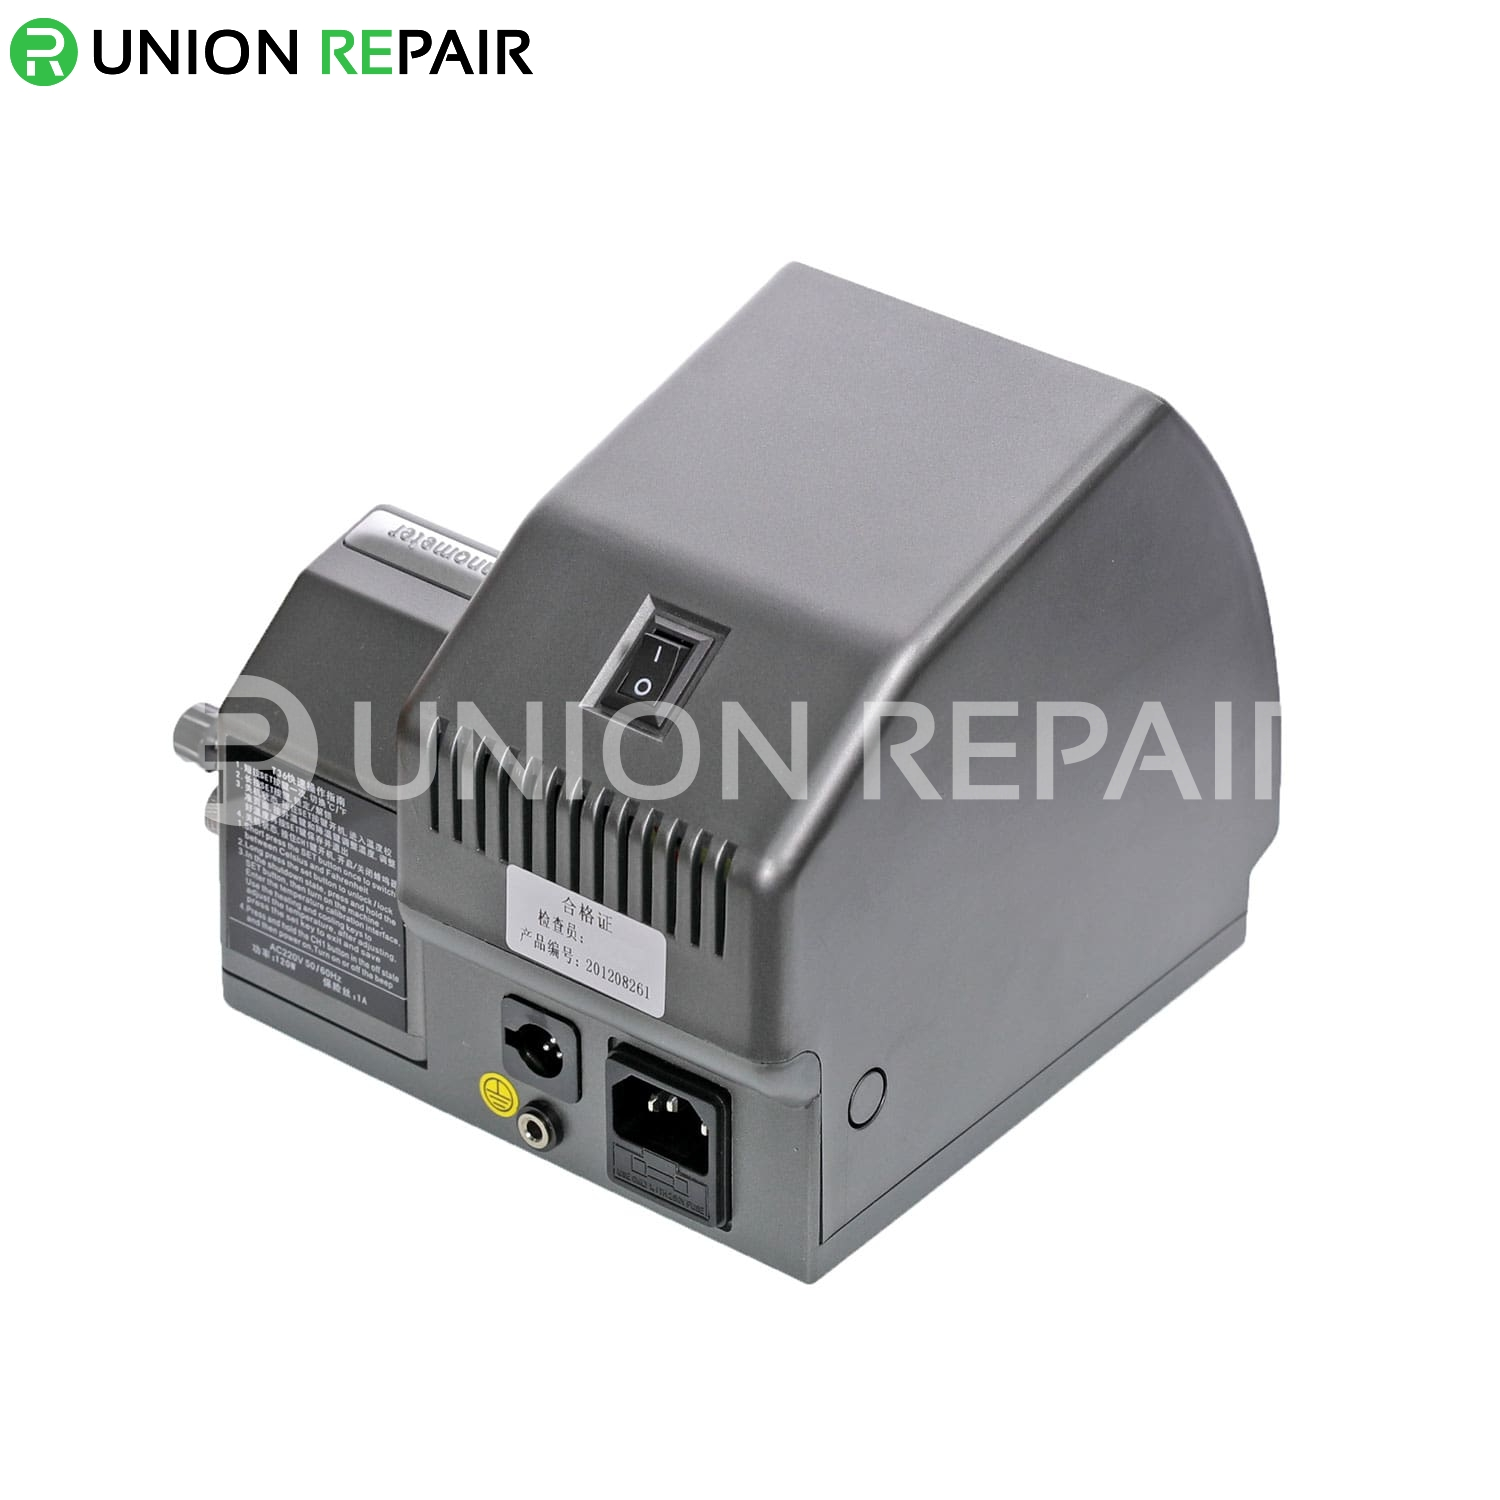 SUGON T36 SMD Soldering Station